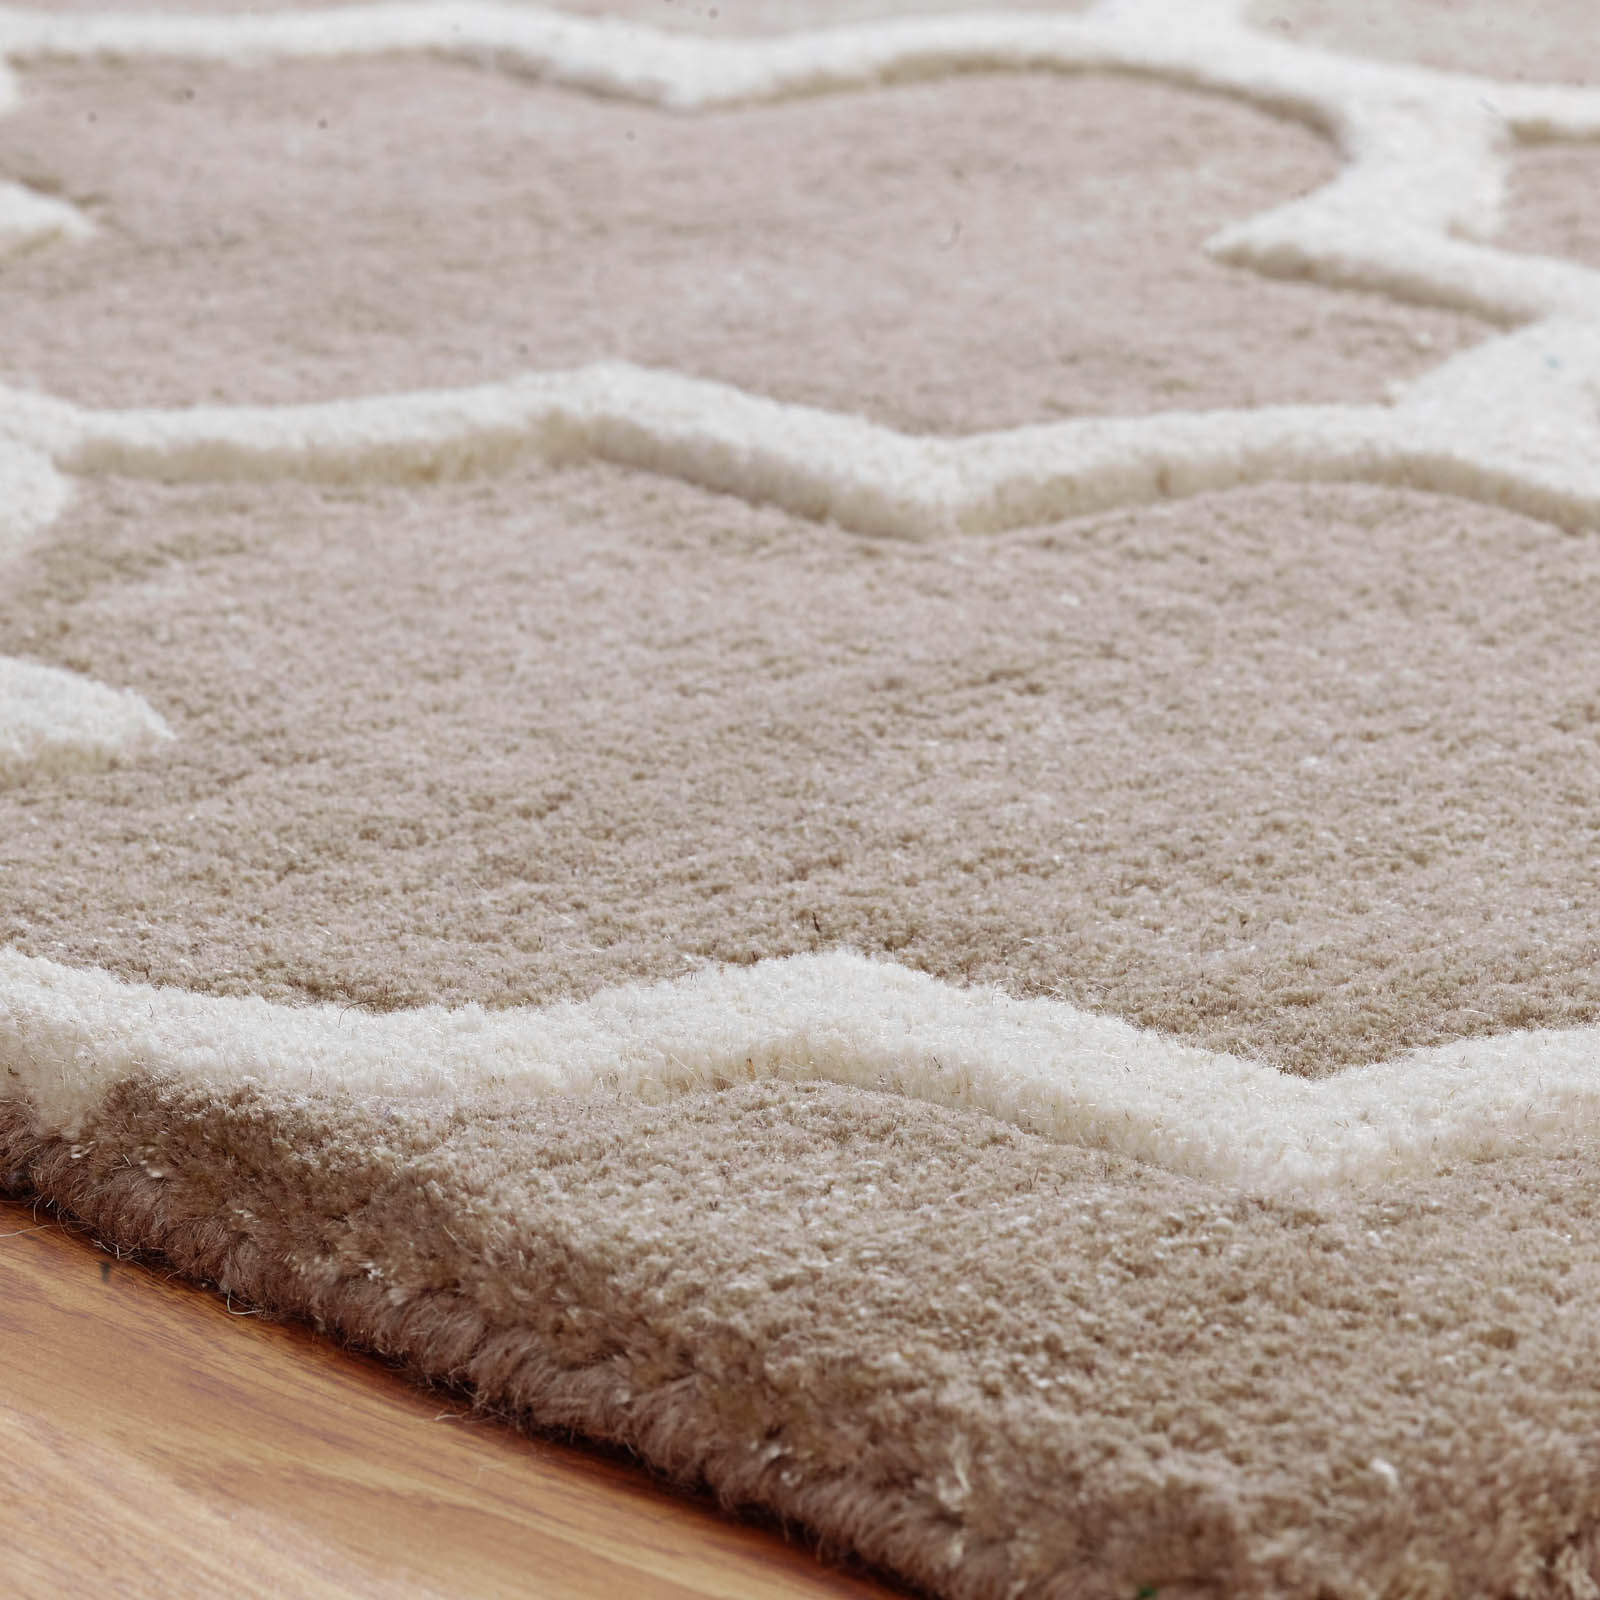 Arabesque Rug In Beige. Click To View Other Images: